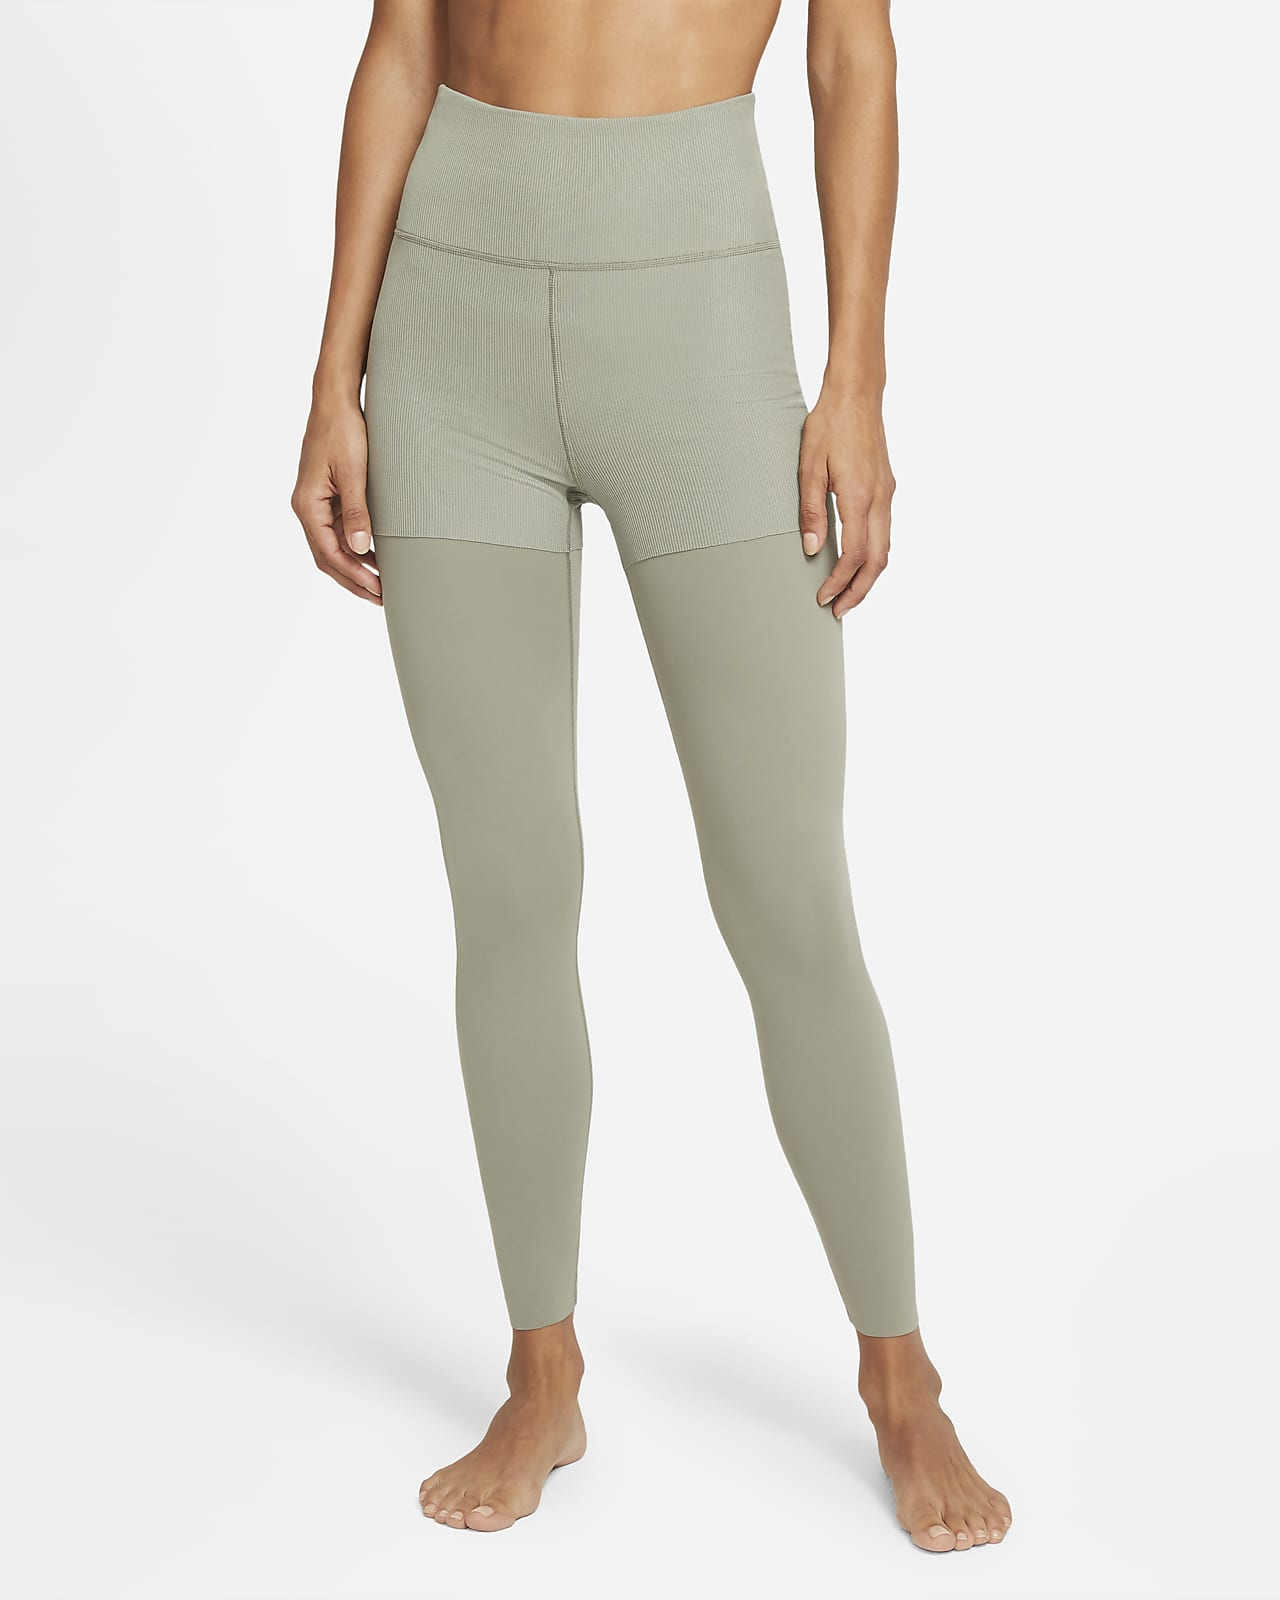 Legging 7/8 Nike Yoga Luxe Layered pour Femme